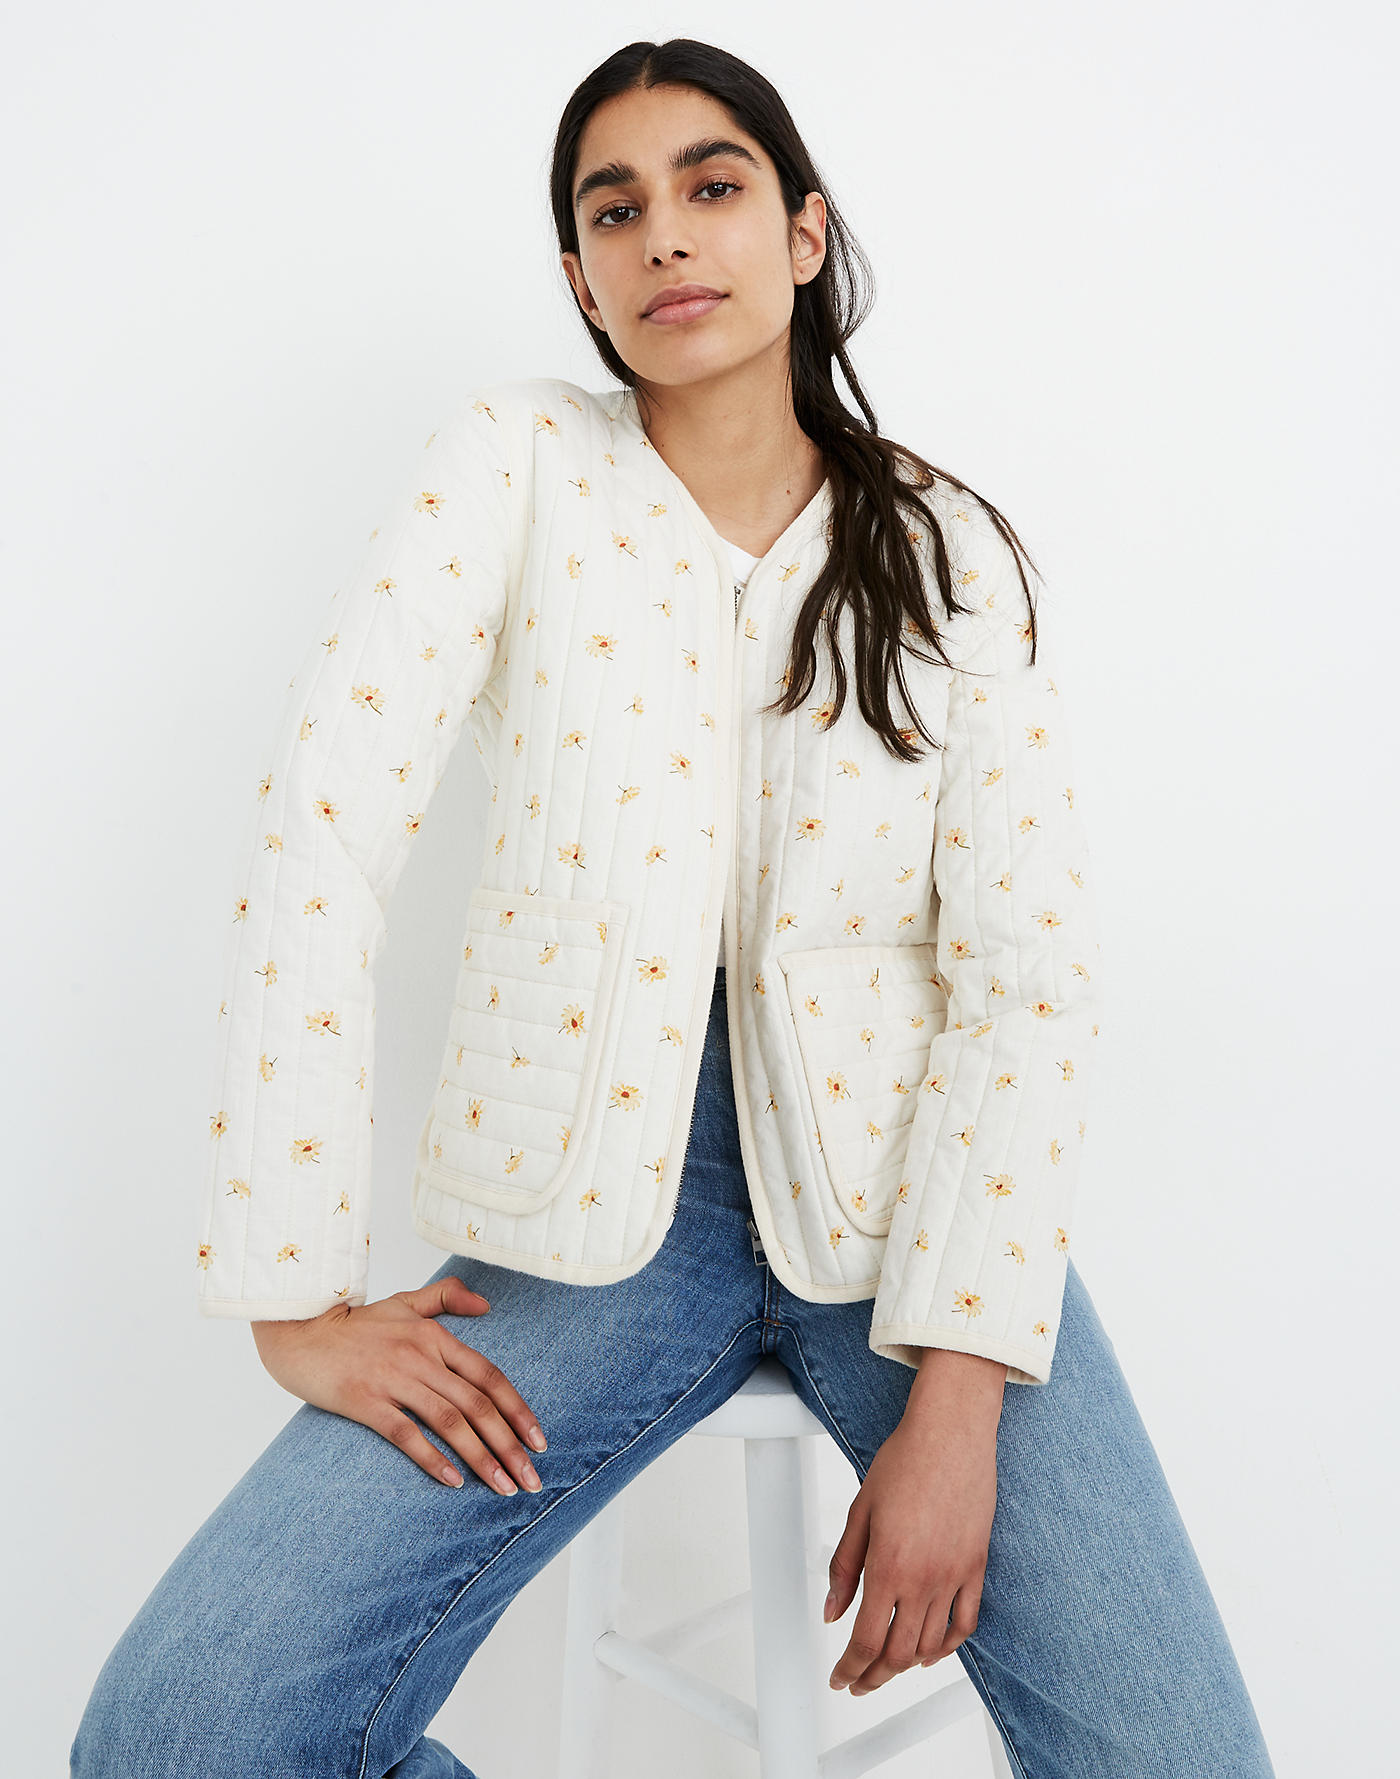 reese witherspoon wore this madewell jacket